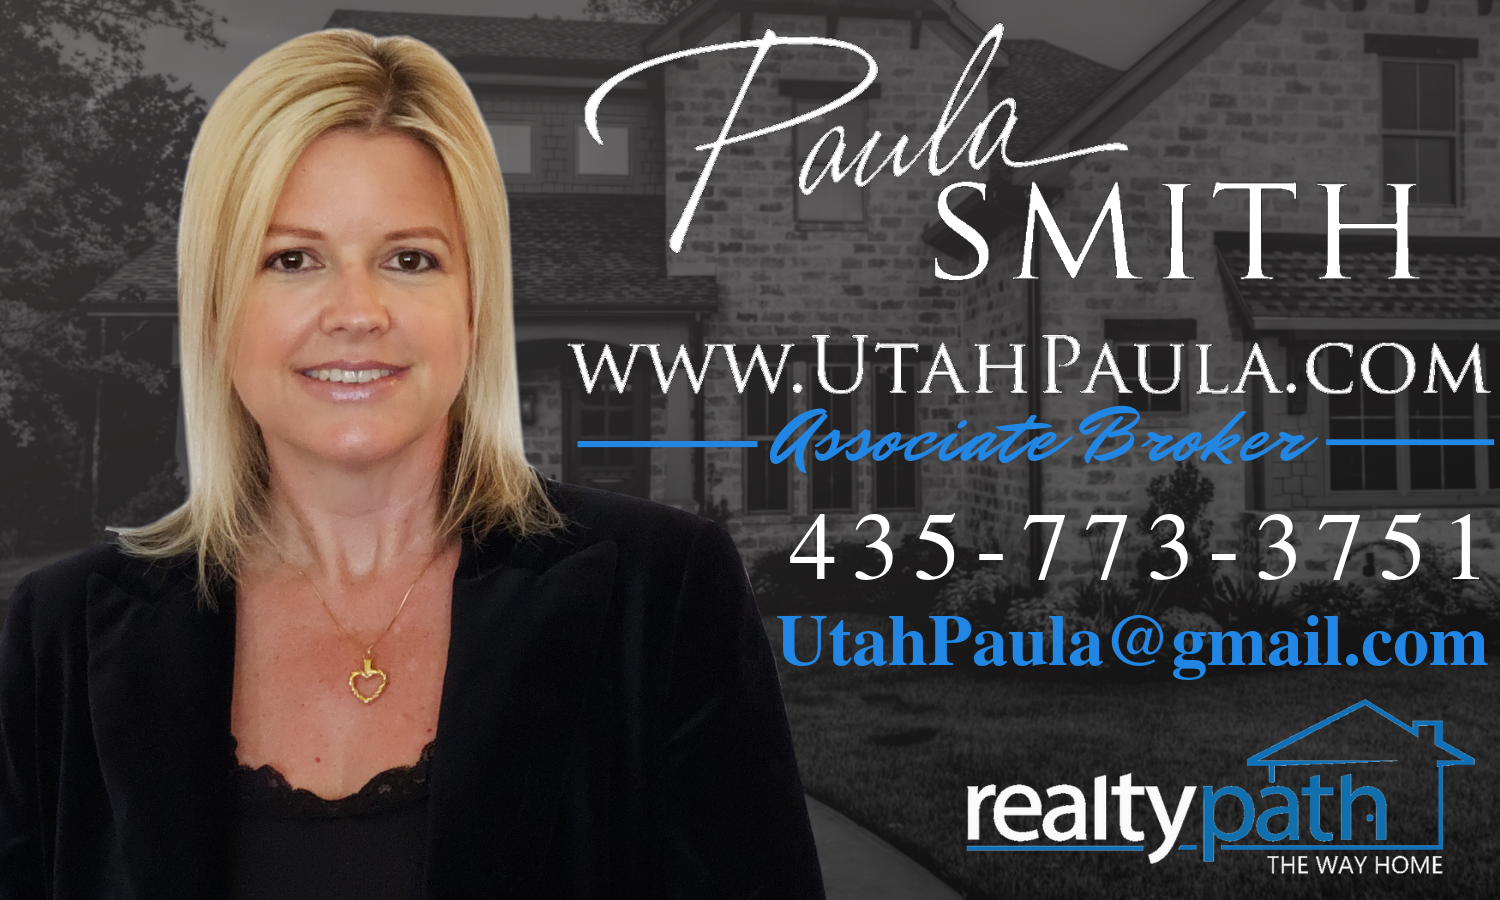 Paula Smith Real Estate RealtyPath St George